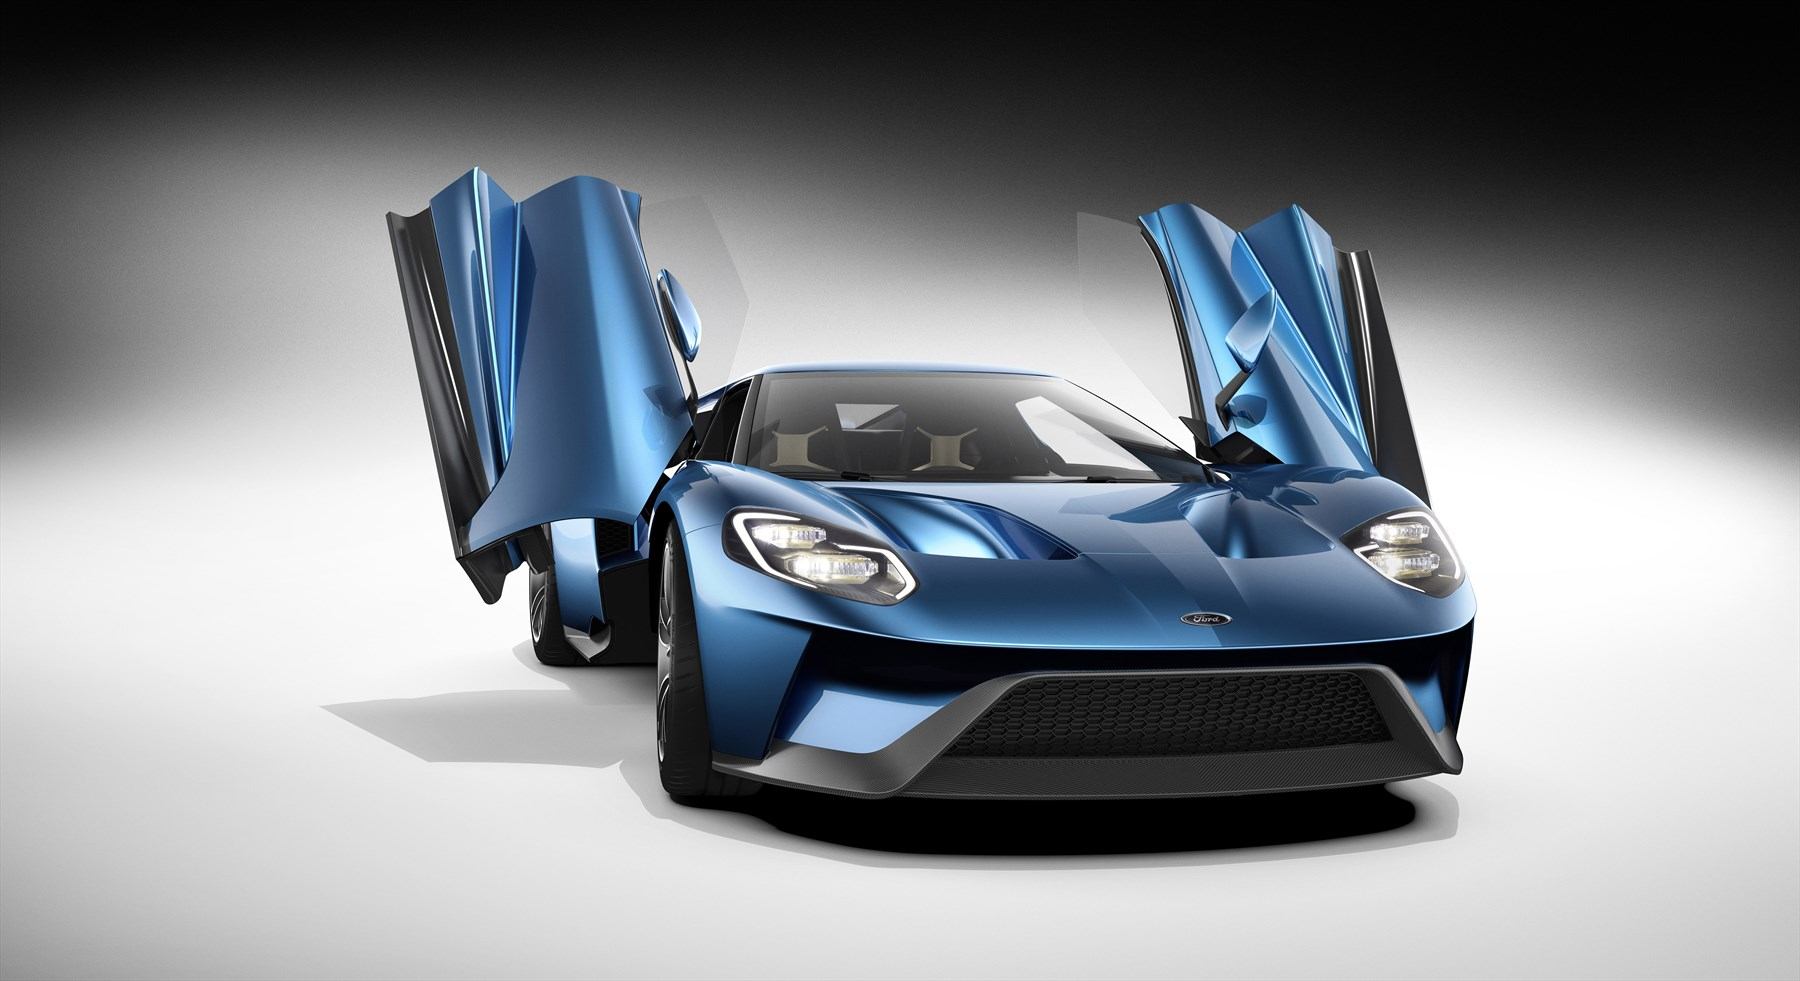 all-newfordgt_05_hr_1800x1800